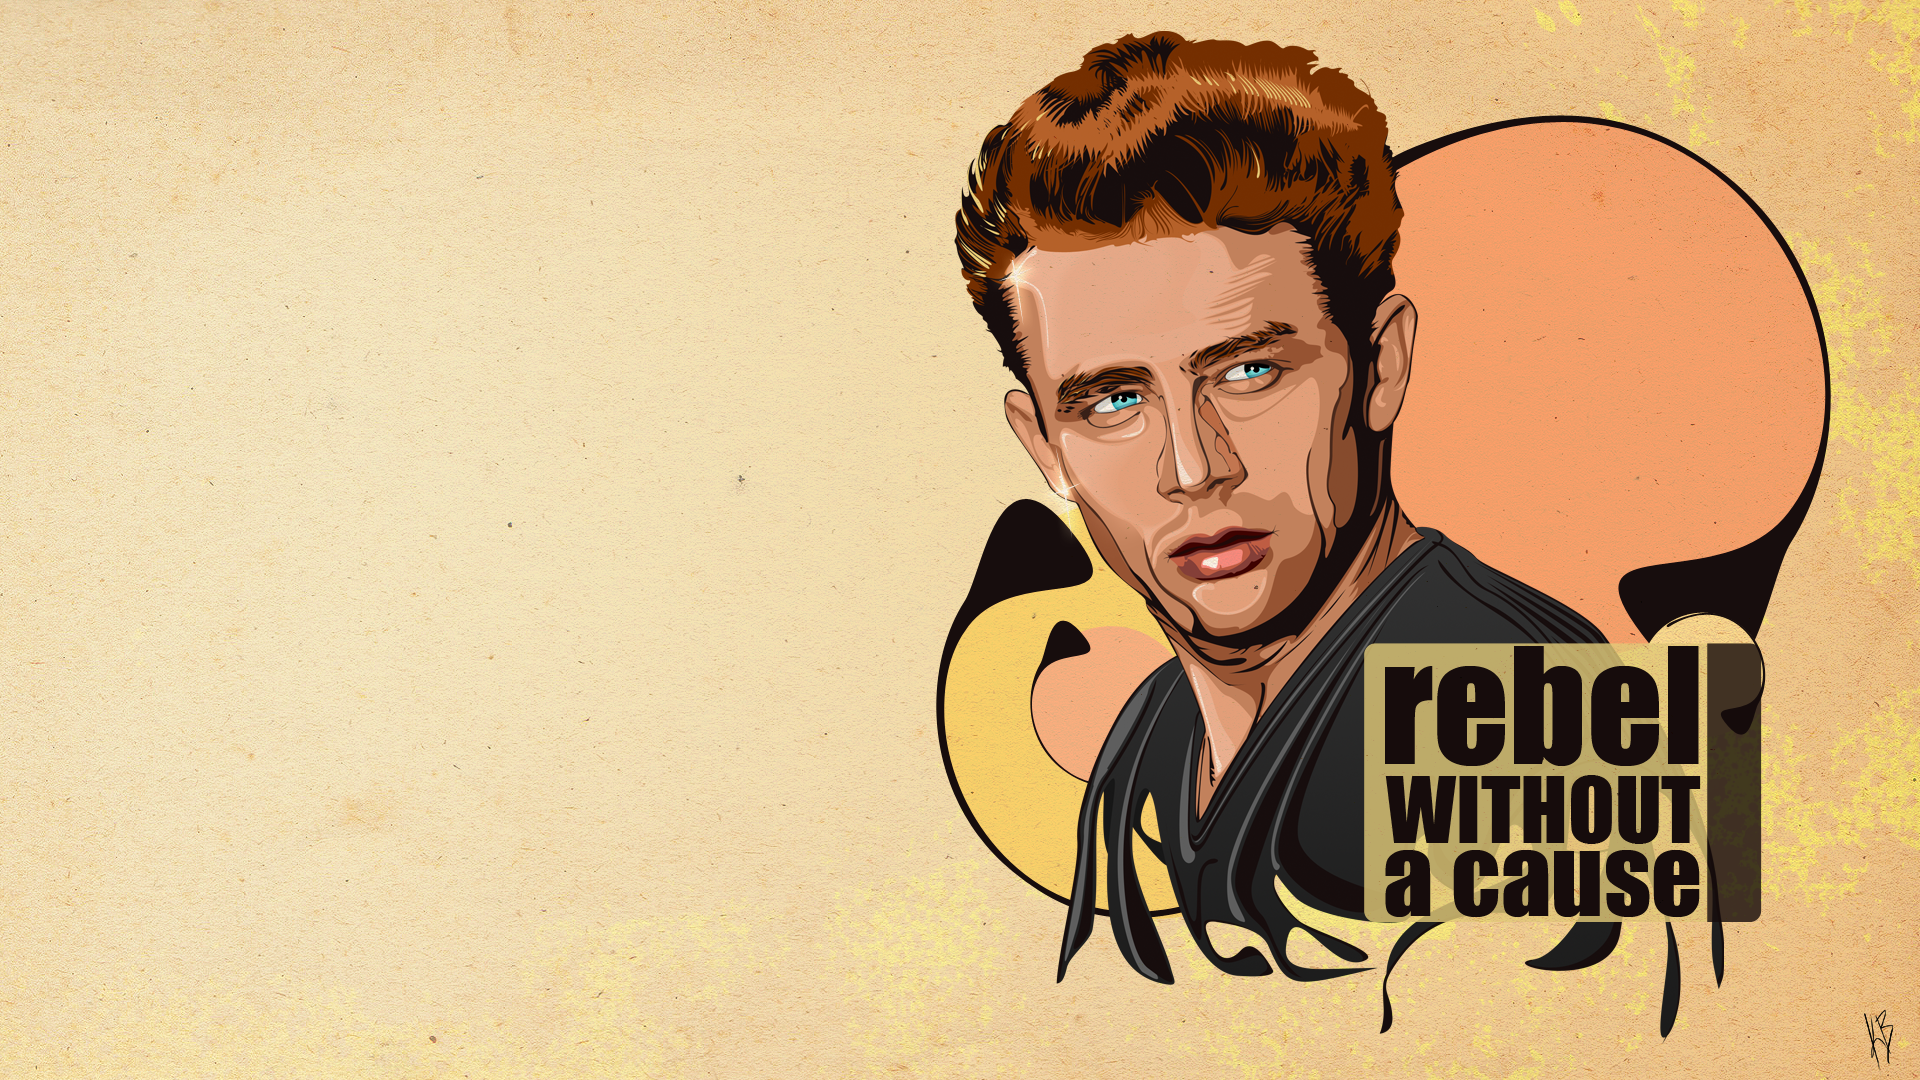 rebel without a cause wallpaper by theplumber702 on deviantart